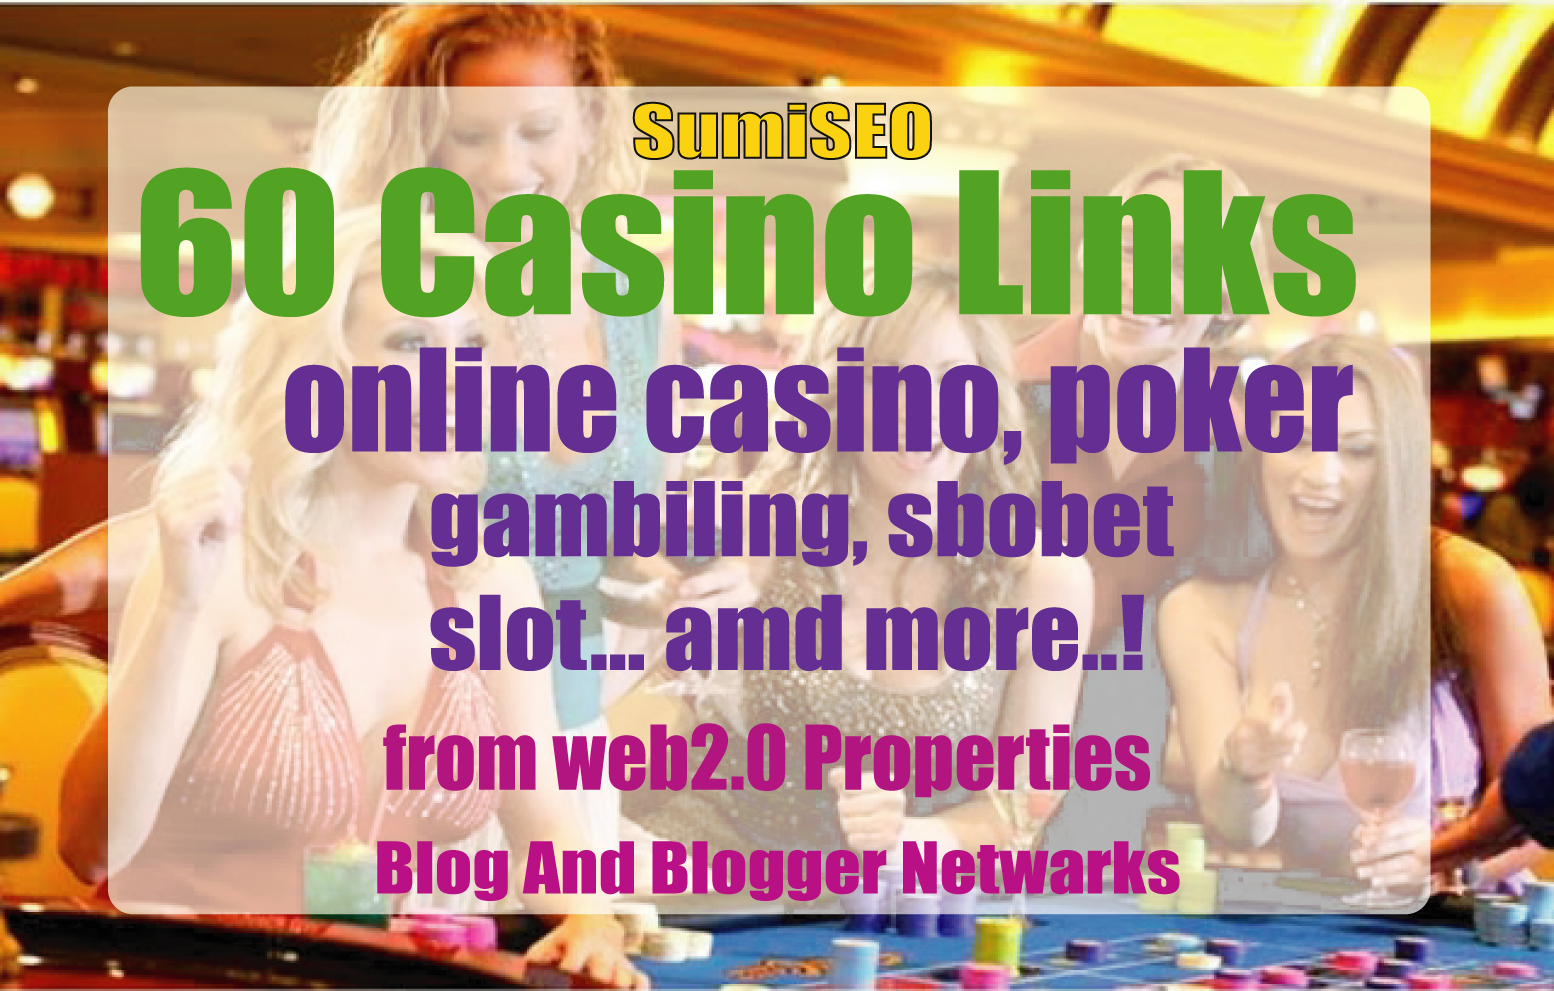 60 Casino Blog post- Casino / Gambling / Poker / Betting / sports sites From Web2.0 Poperties